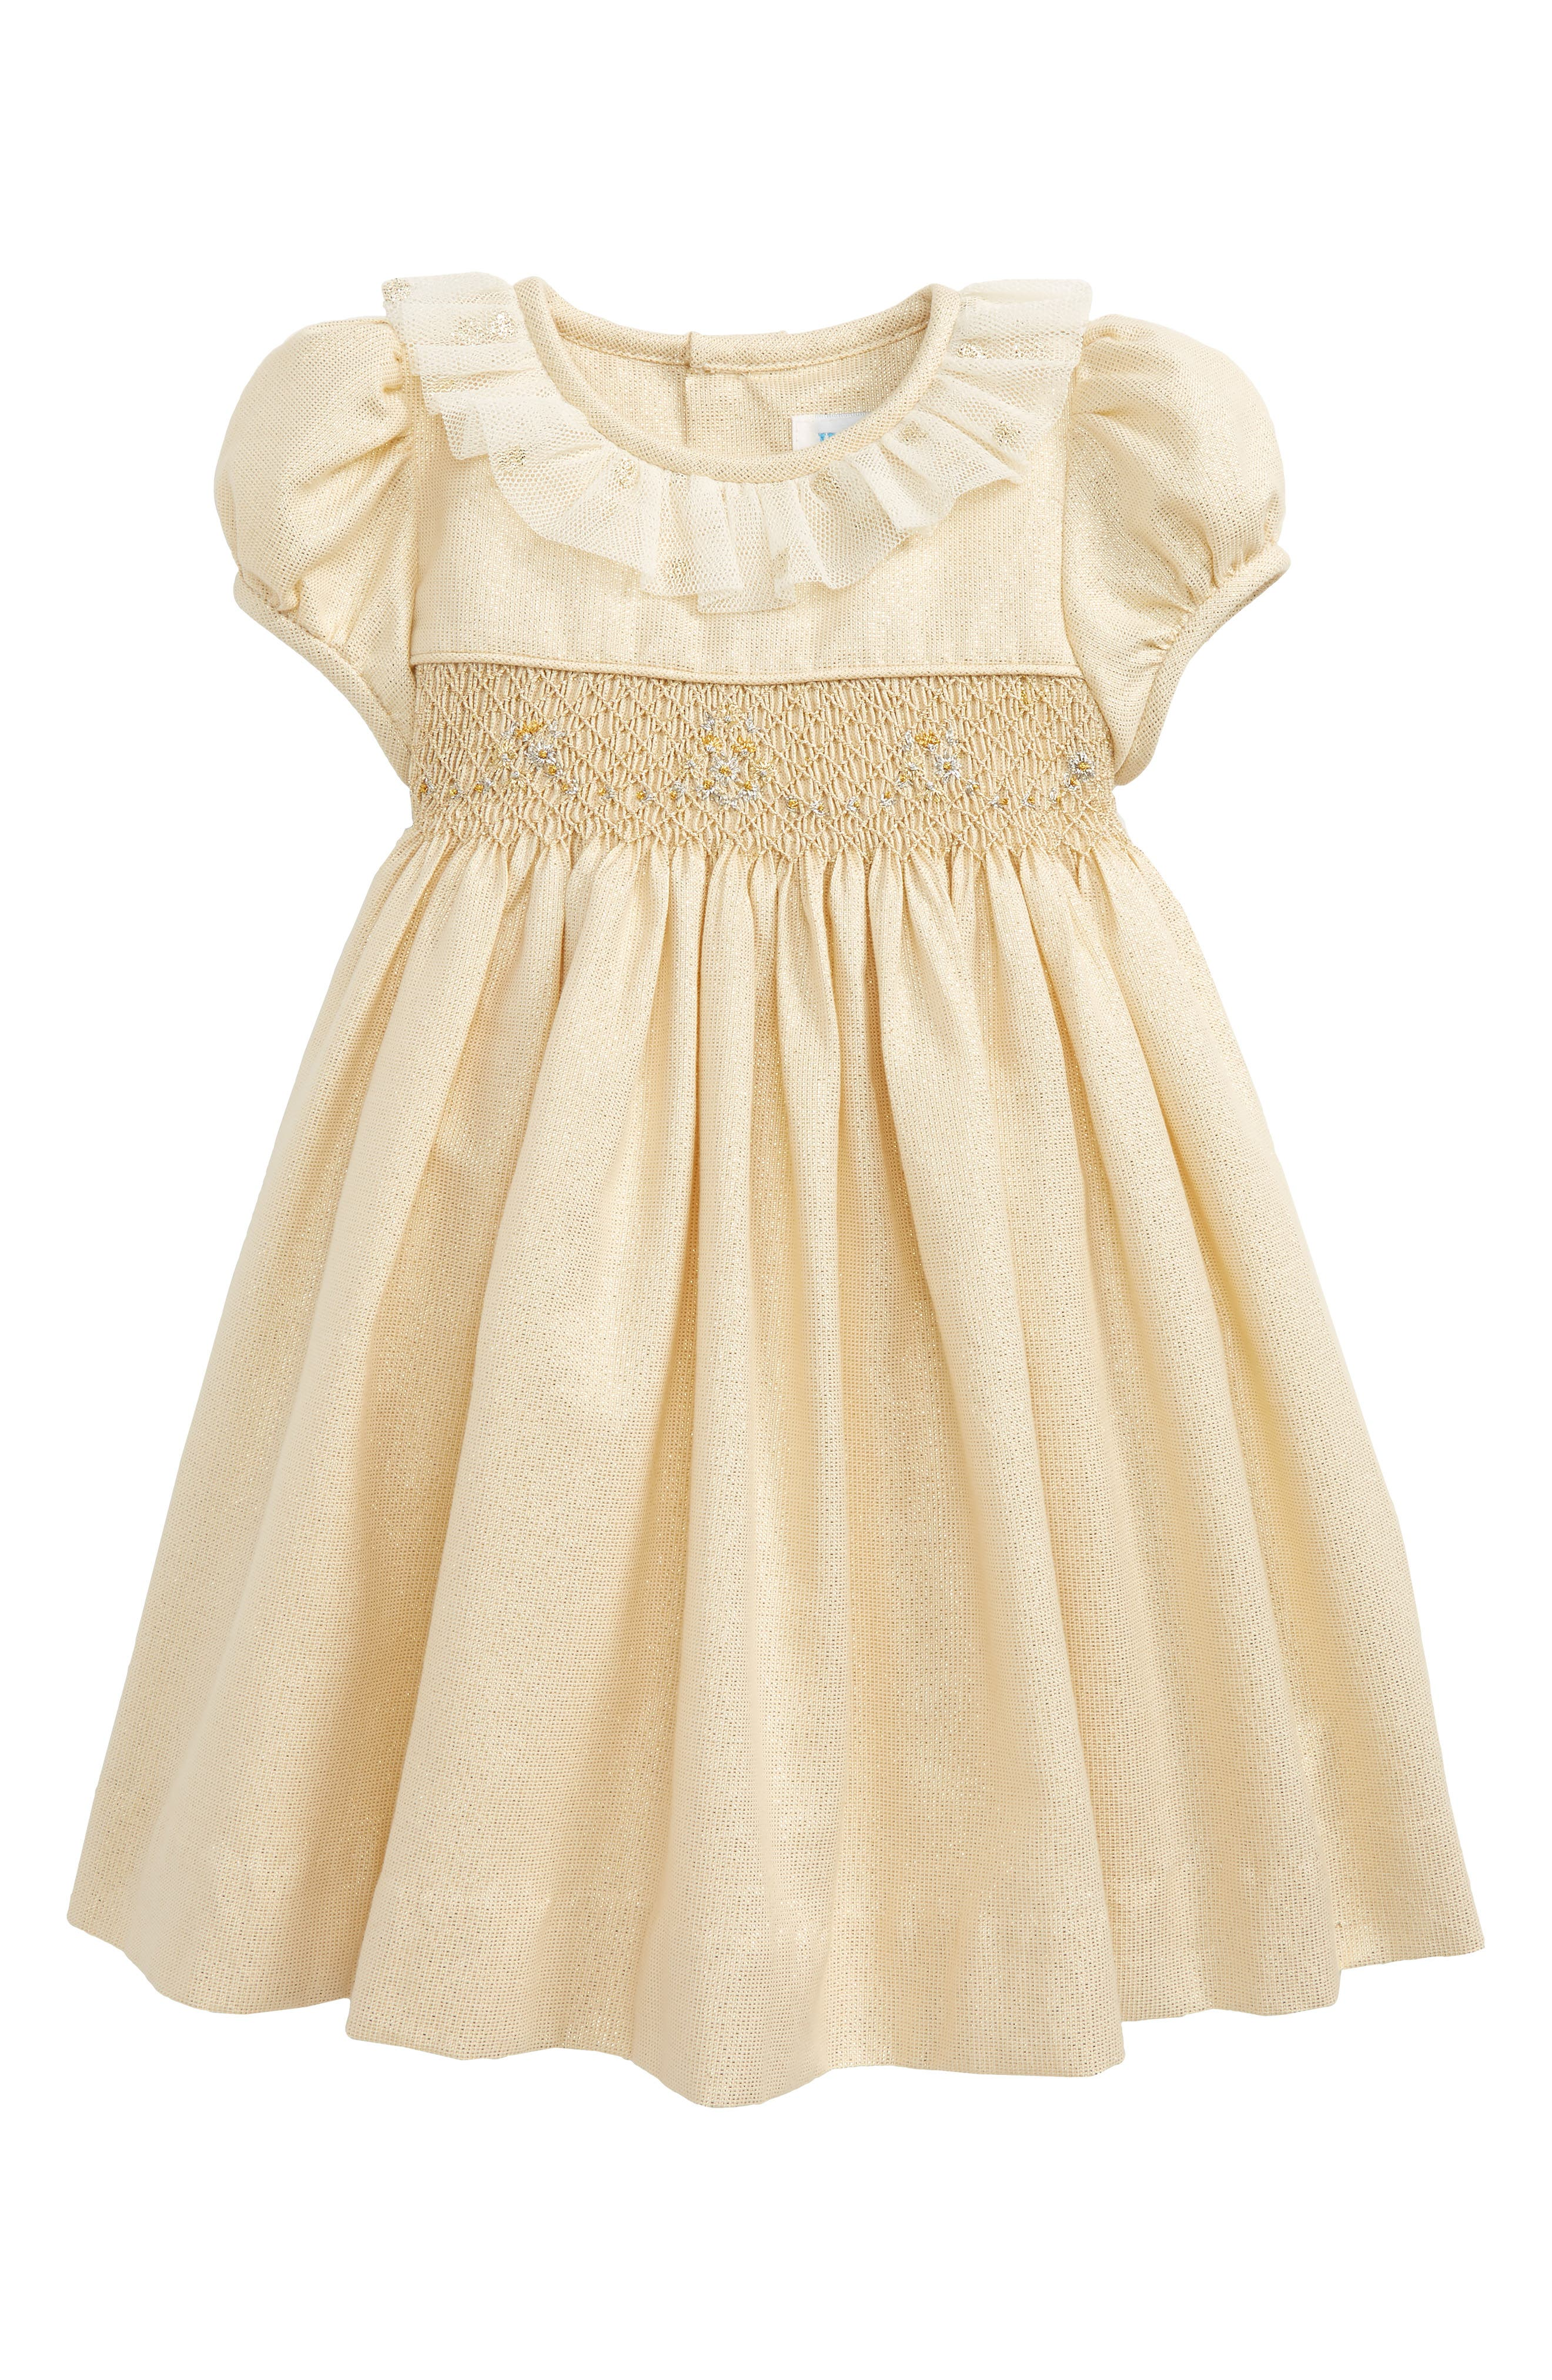 Jacquard Smocked Dress,                         Main,                         color, Gold